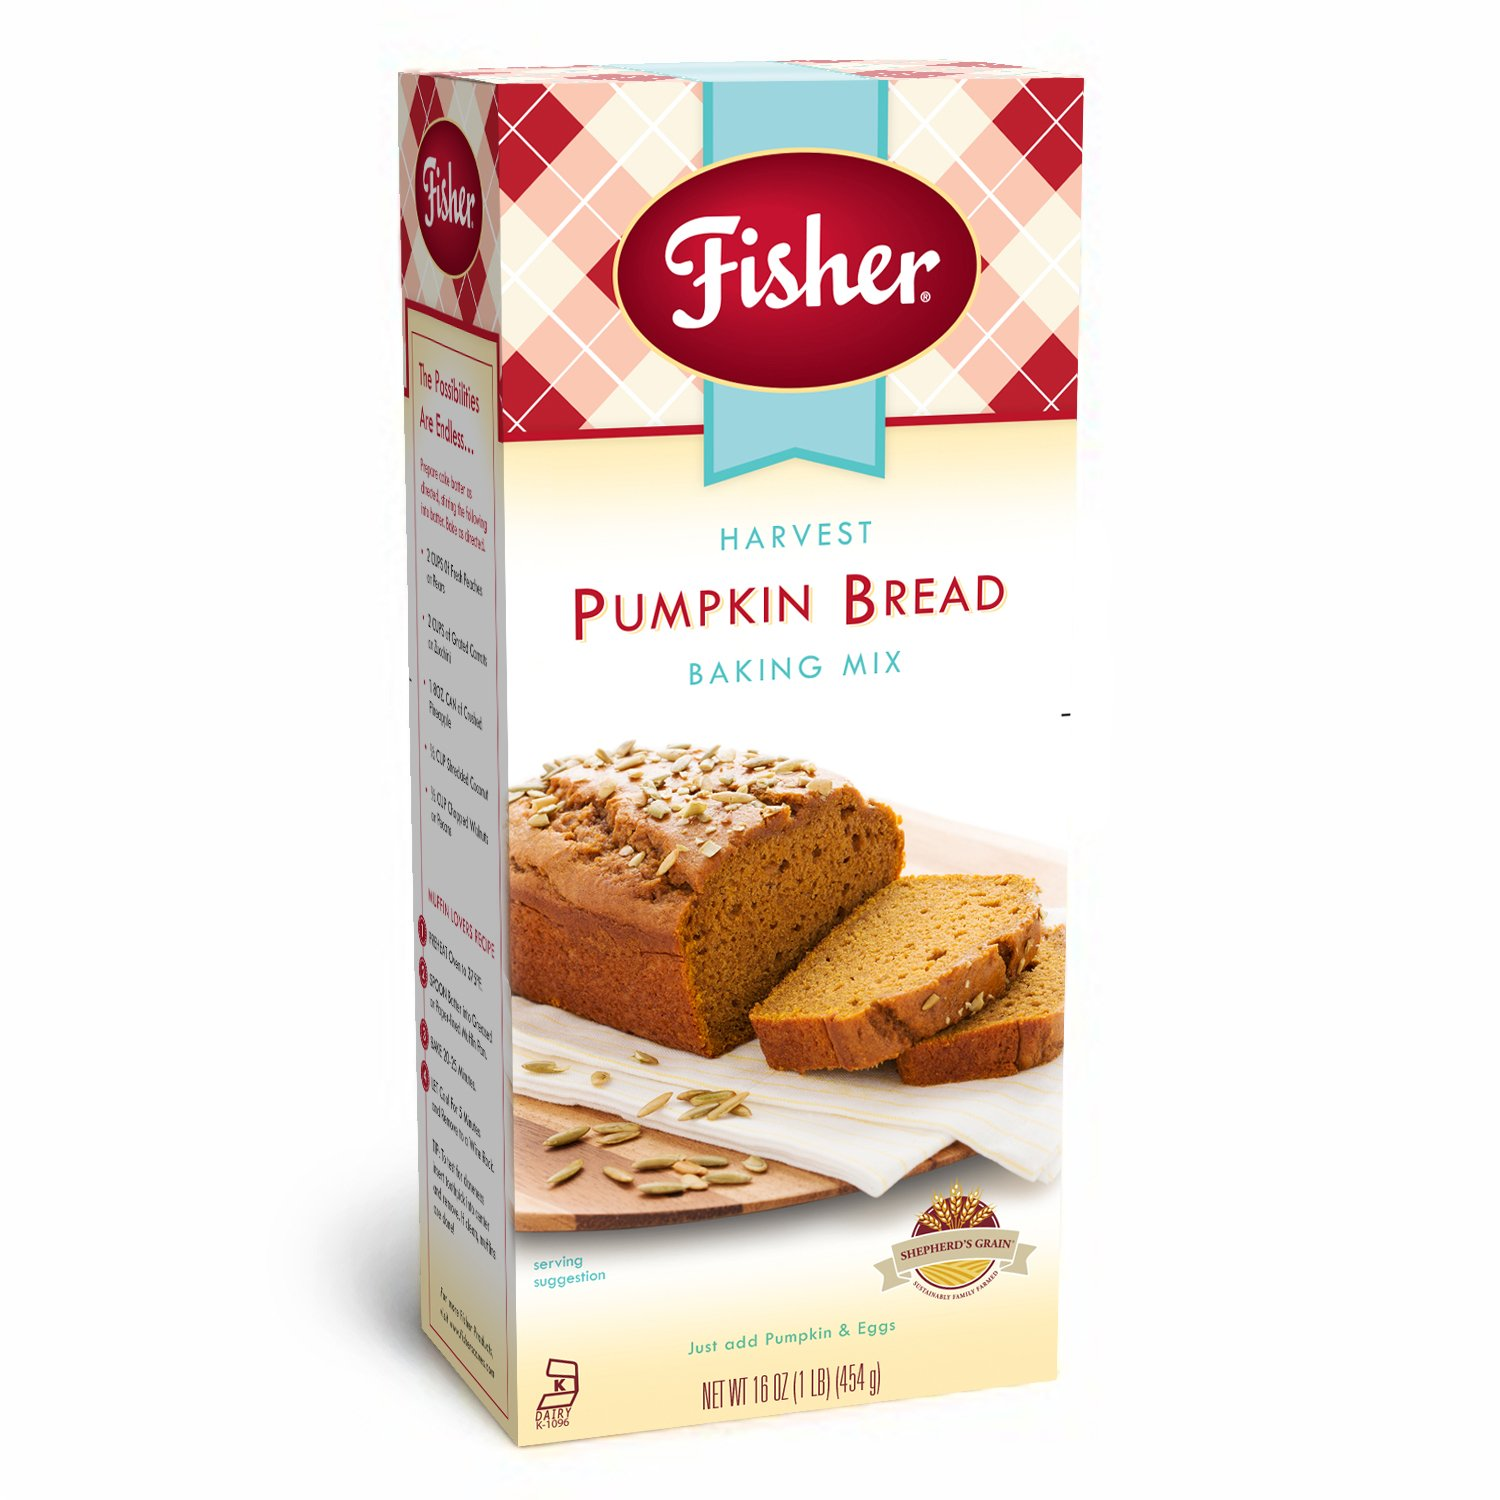 Fisher All Natural Harvest Pumpkin Bread Mix, 16 Ounces, Pack of 3 by Fisher